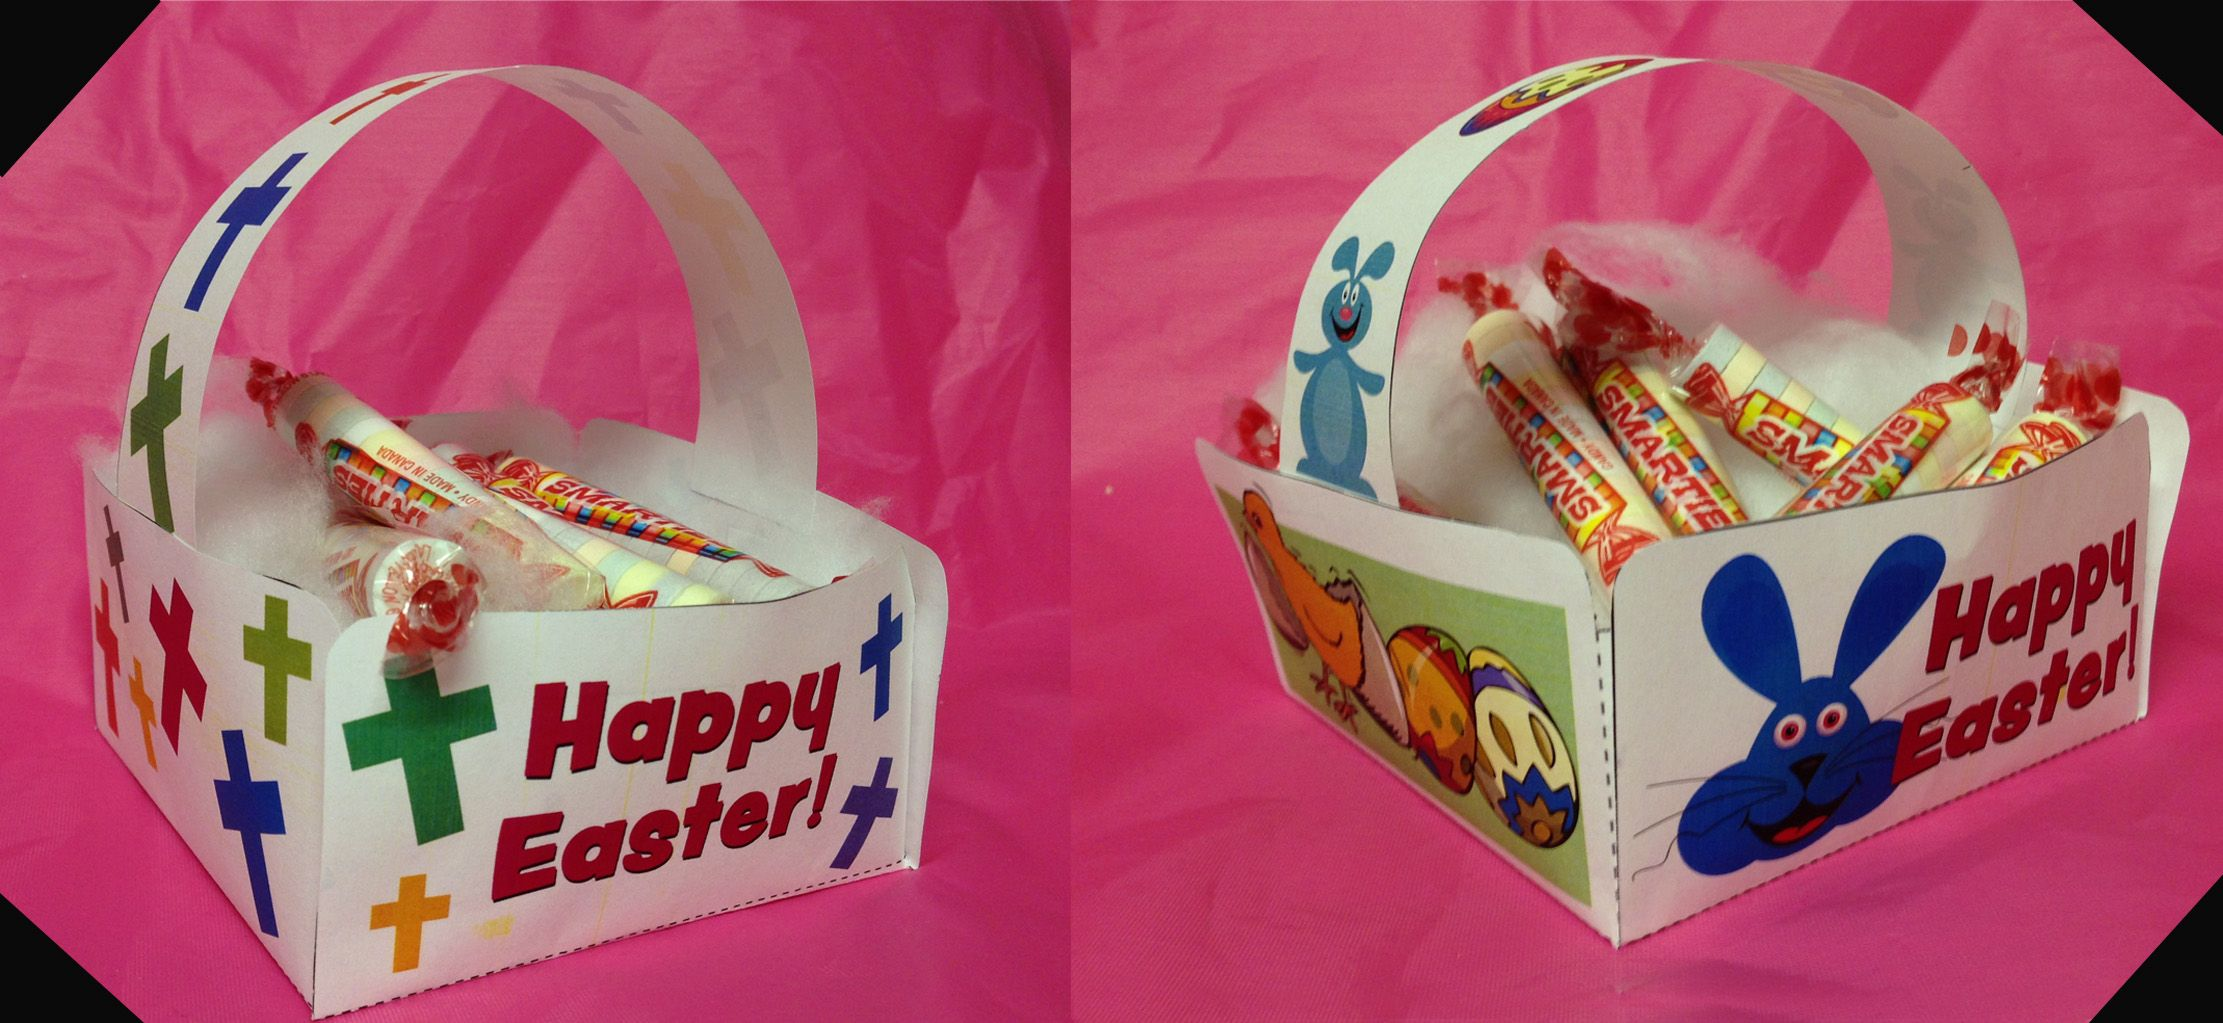 Free printable easter baskets from guildcraft arts for Guildcraft arts and crafts